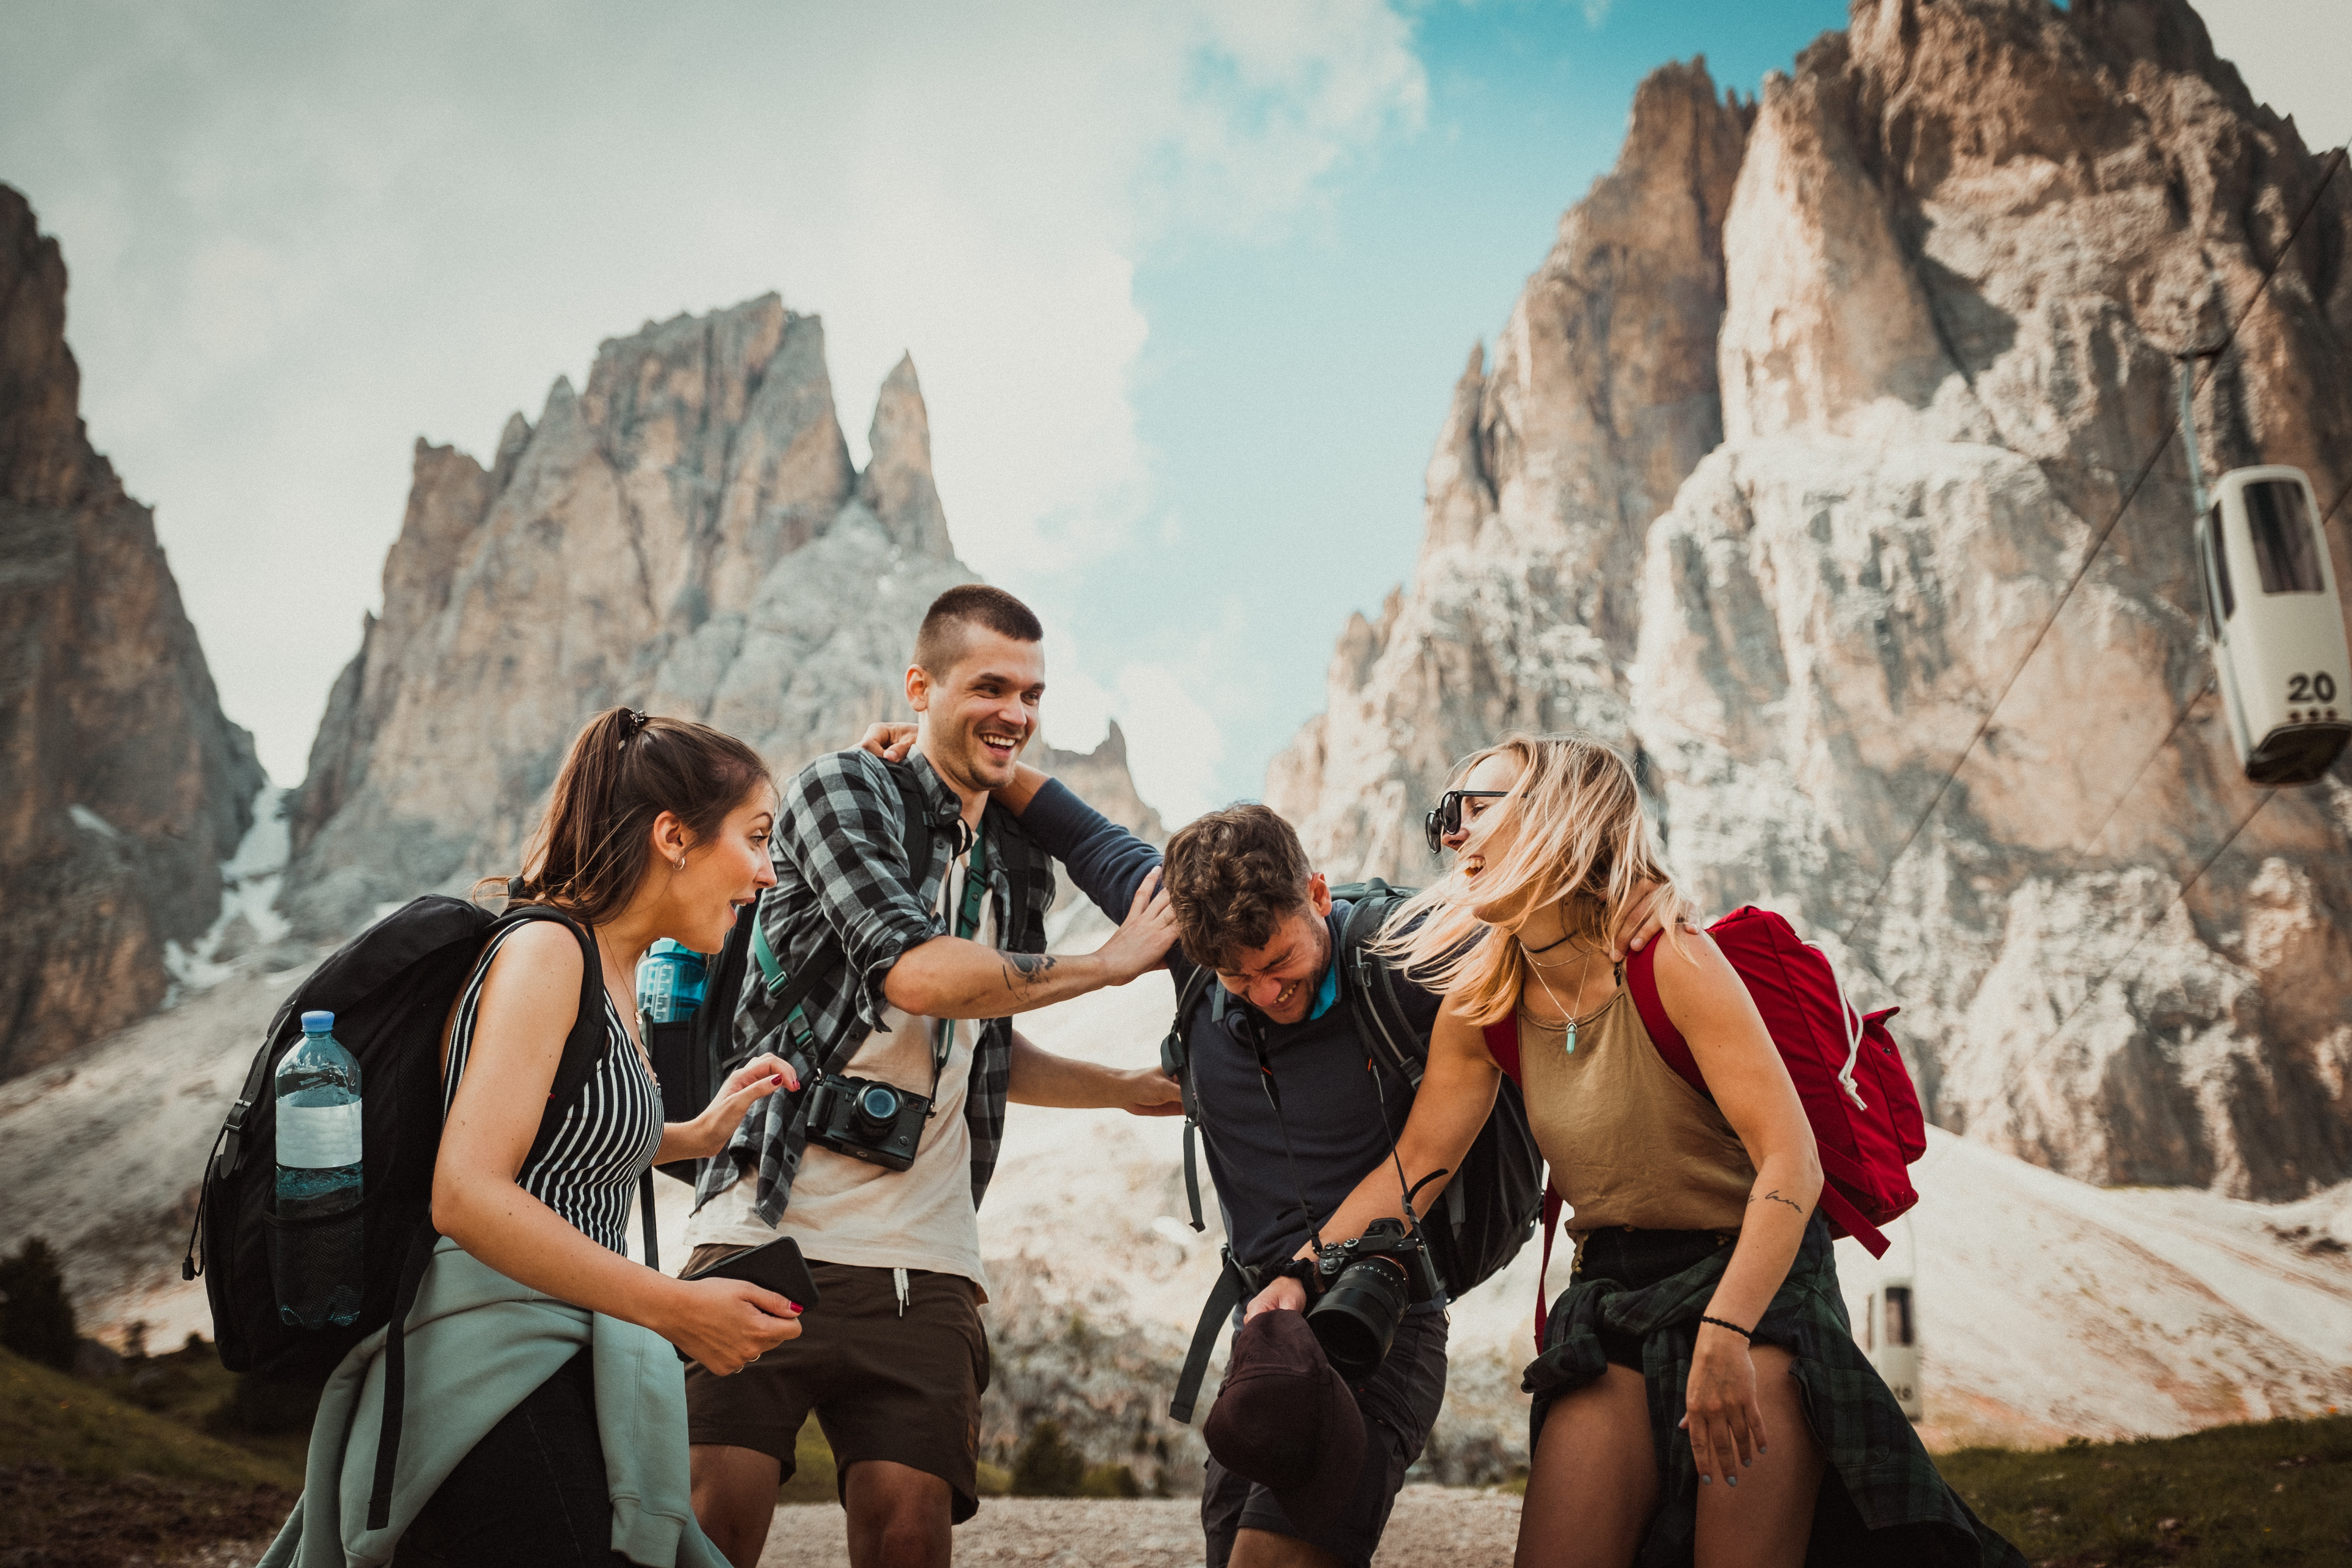 Finding The Ideal Travel Buddy